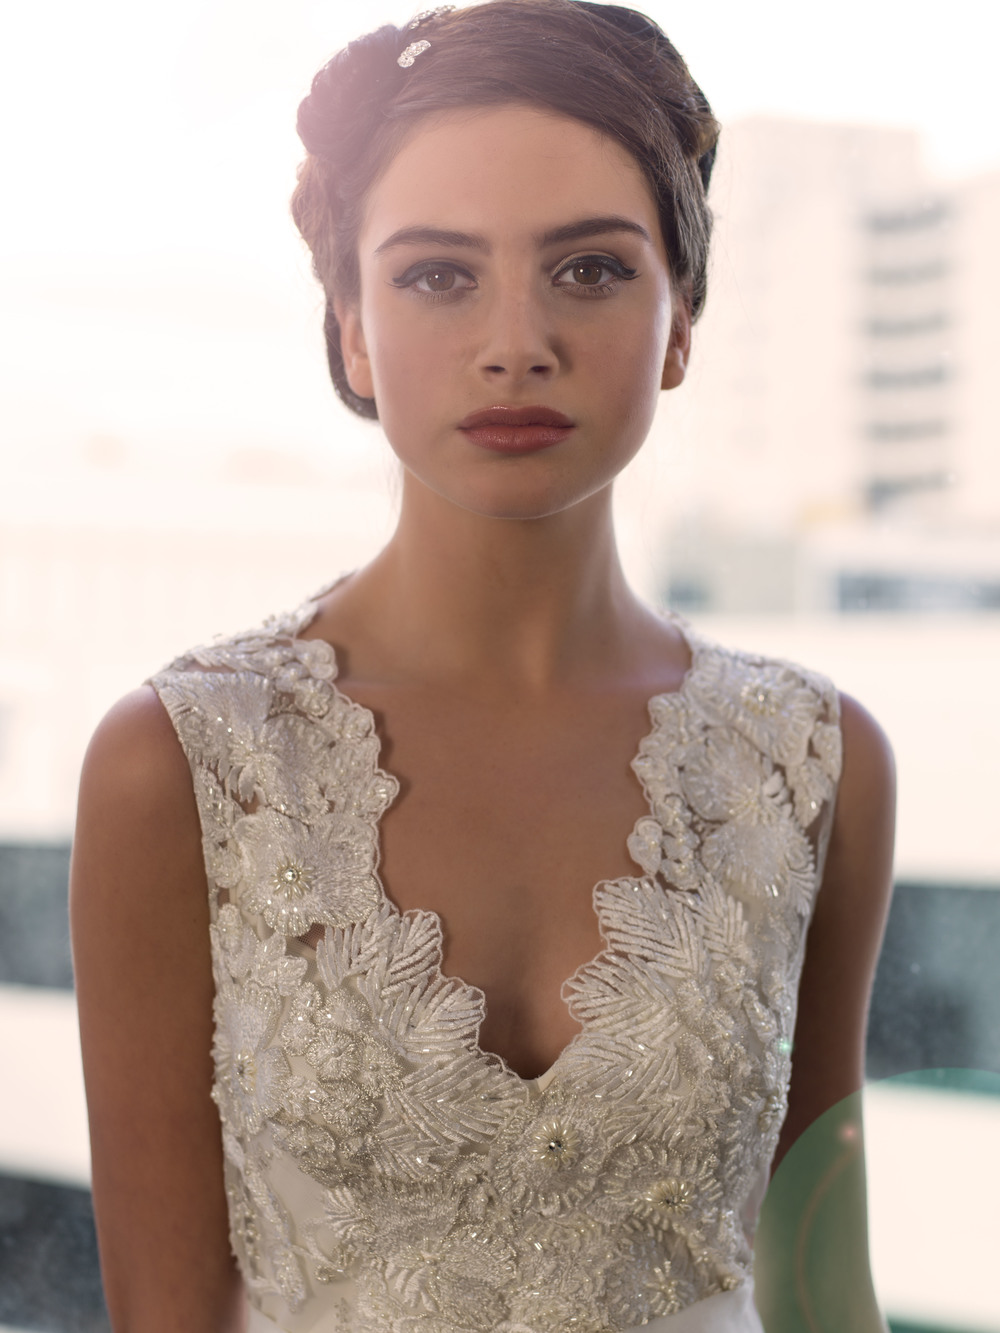 Sarah Janks Wedding Gown - Fall 2014 Collection {Delilah in detail} : embroidered flowers accented with faceted beads on a sheer, tulle overlay